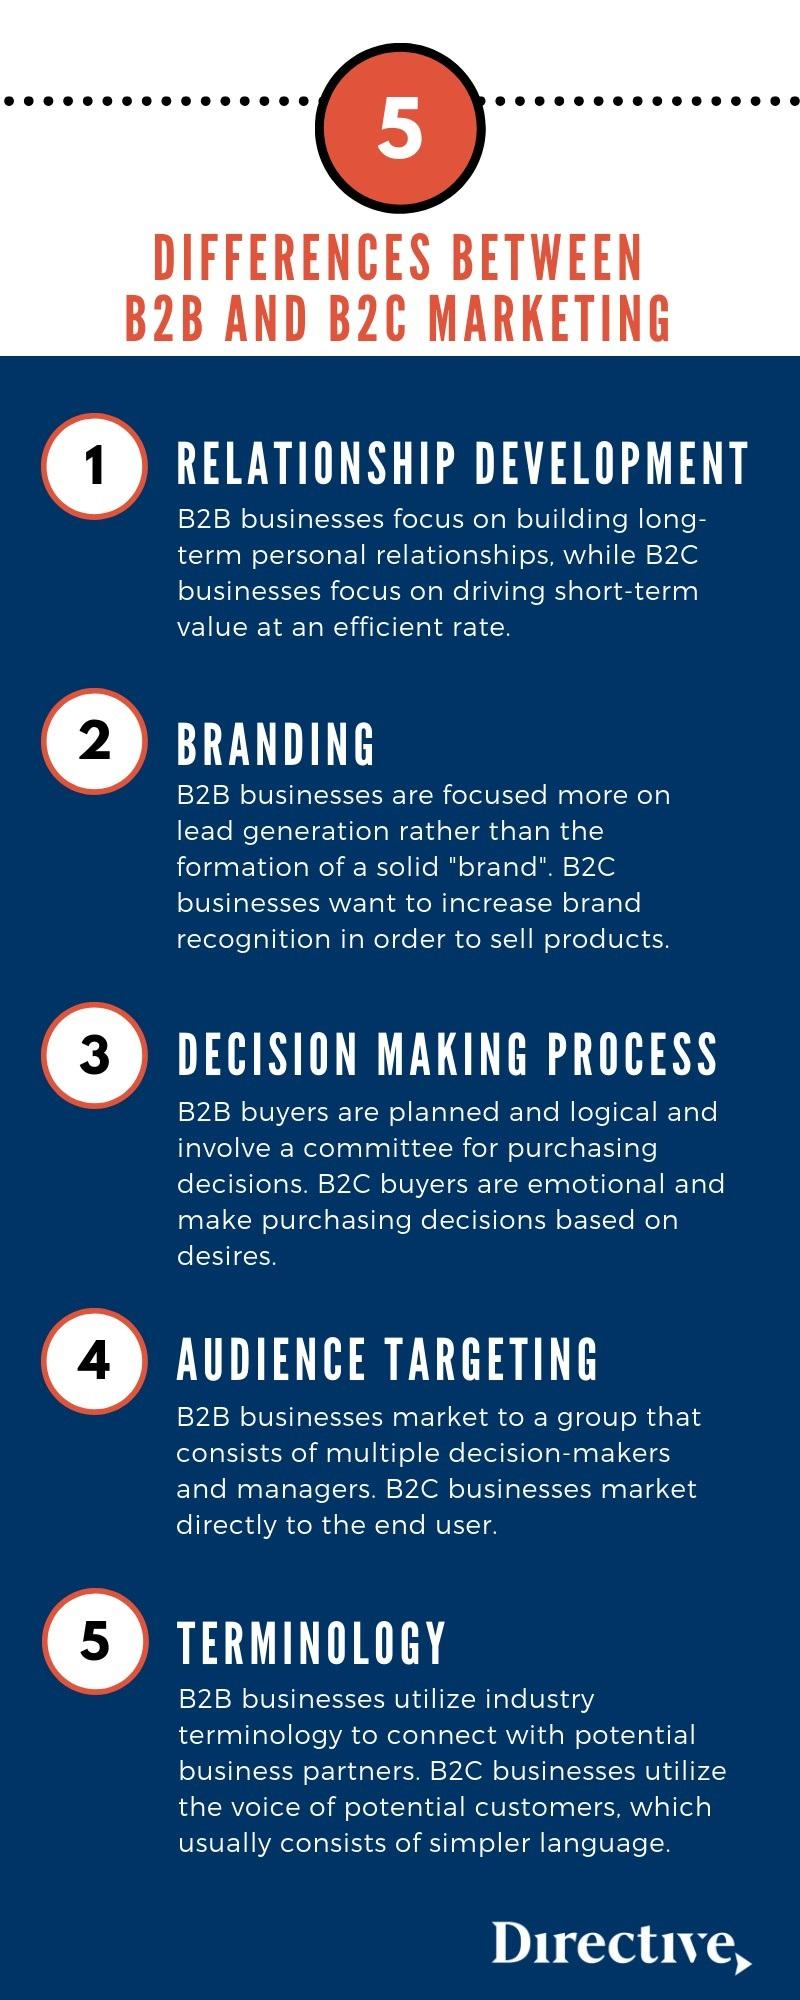 B2B vs B2C marketing strategy